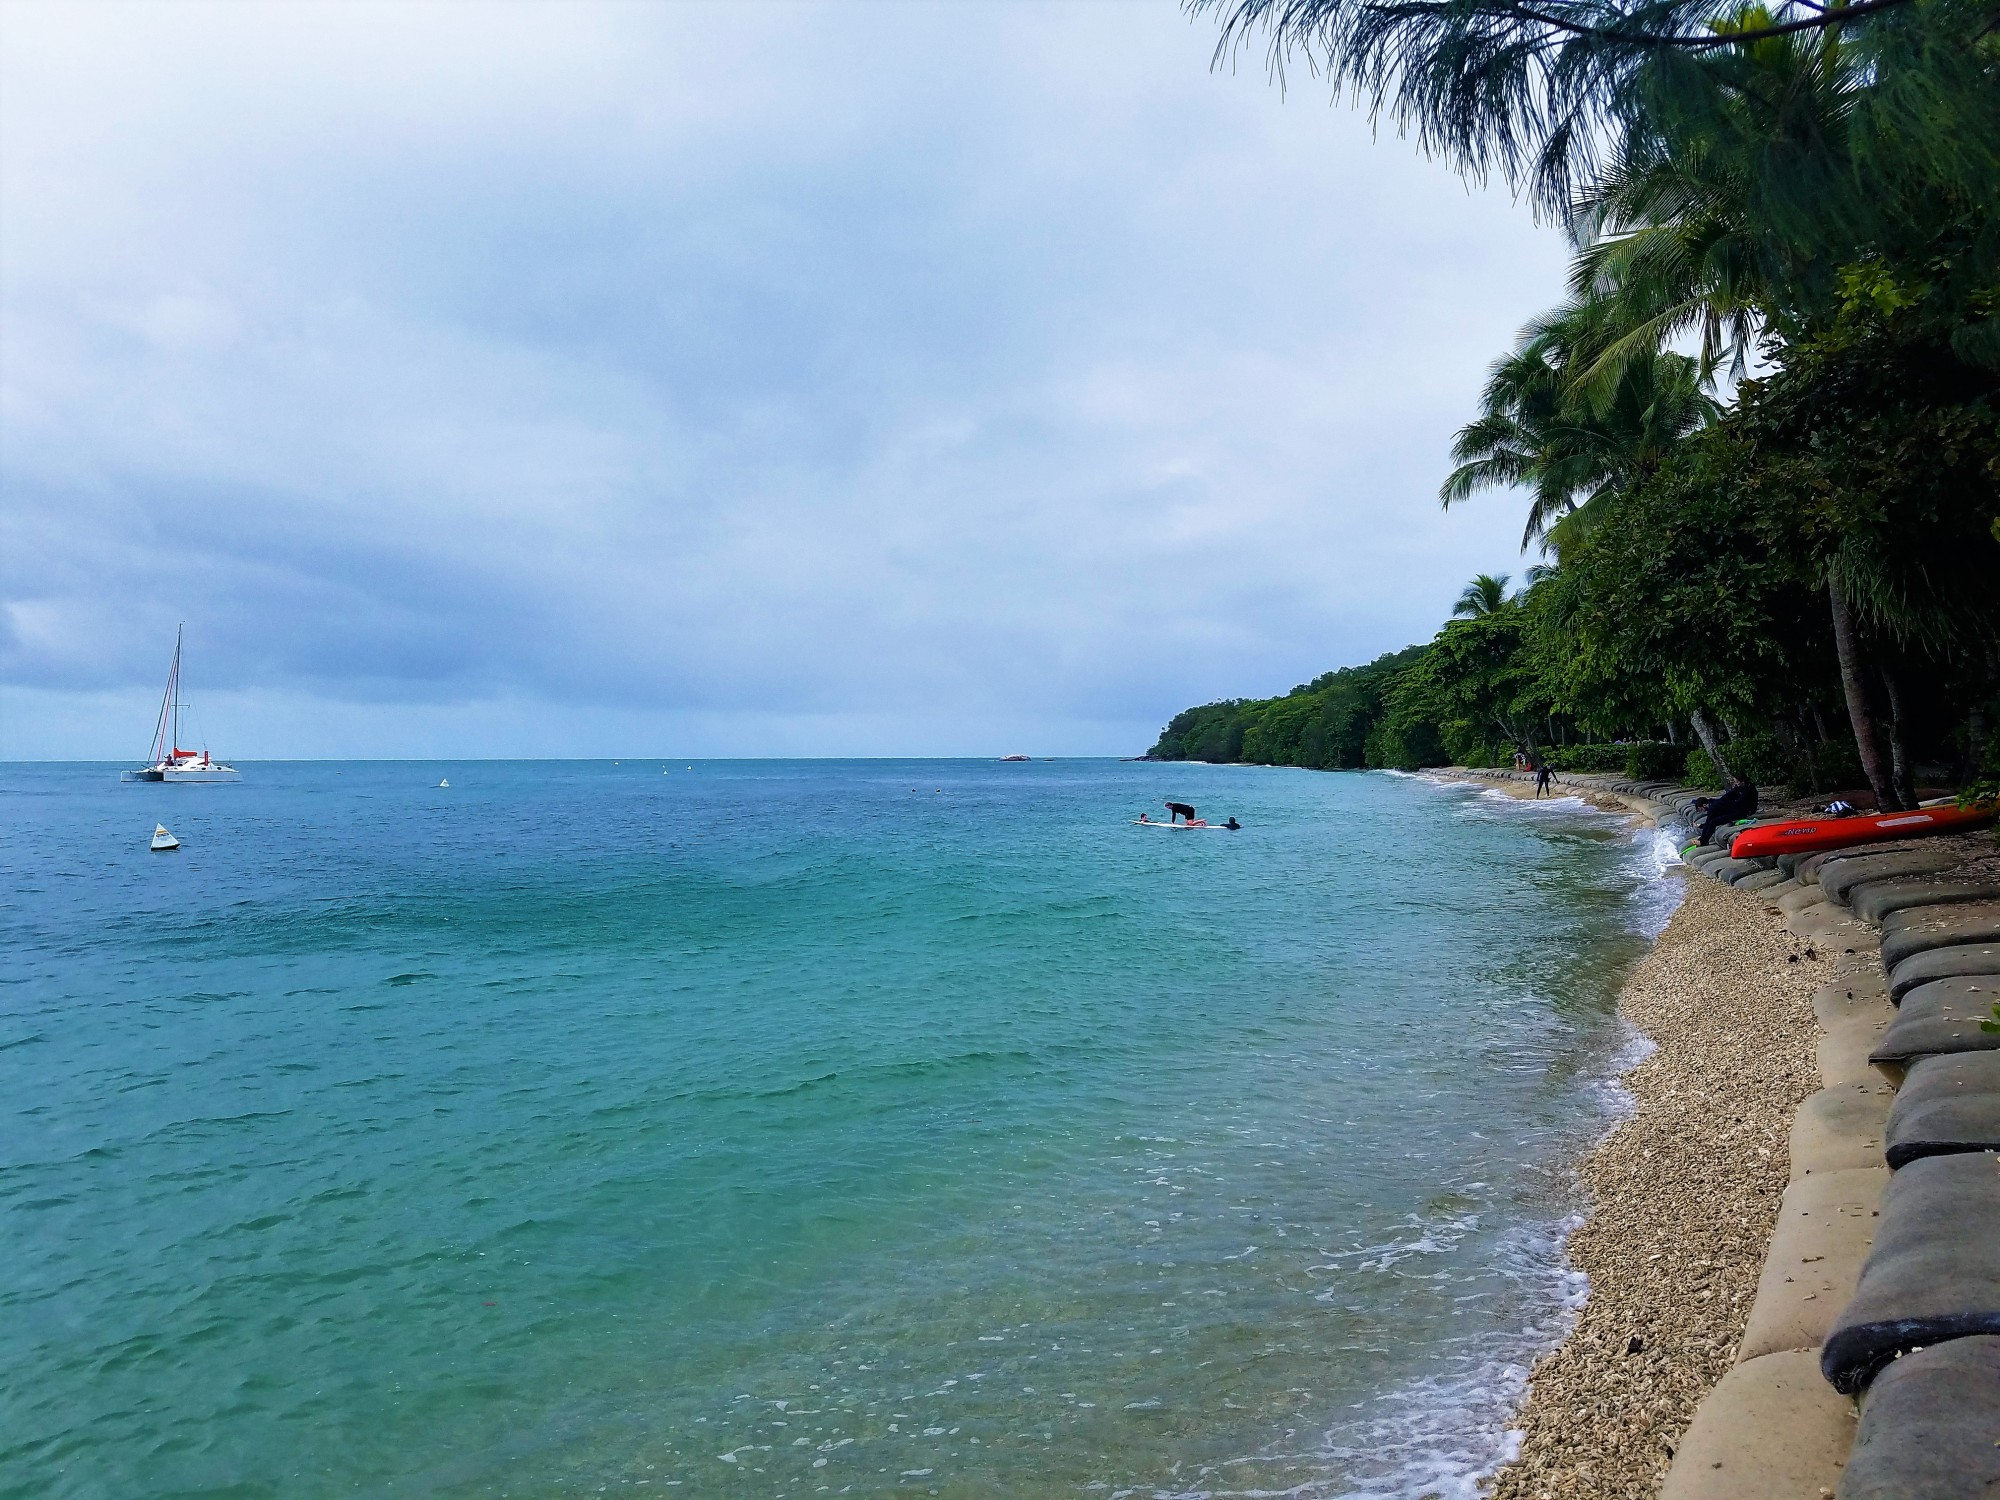 Australia Travel Guide | Fitzroy Island Great Barrier Reef Snorkeling Excursion from Cairns